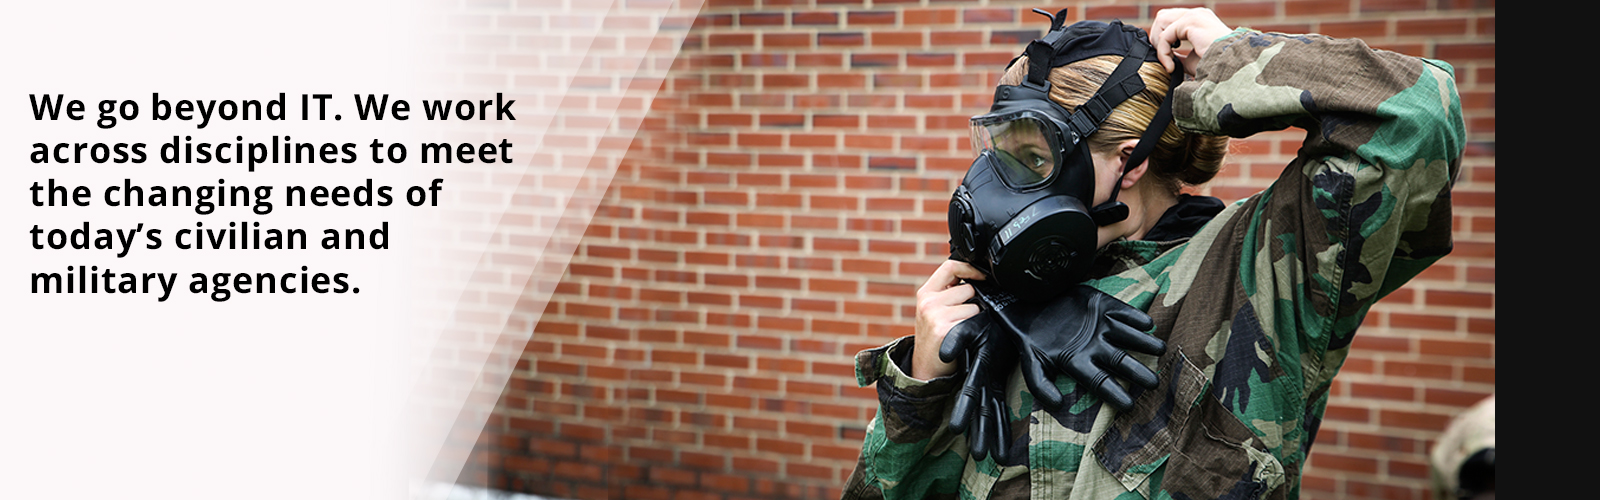 Lance Cpl. Amanda Degrave, a Marine with Marine Air Ground Task Force Materiel Distribution Company, 2nd Supply Battalion, adjusts her gas mask during a Chemical, Biological, Radiological and Nuclear decontamination course aboard Camp Lejeune, N.C., July 16, 2015